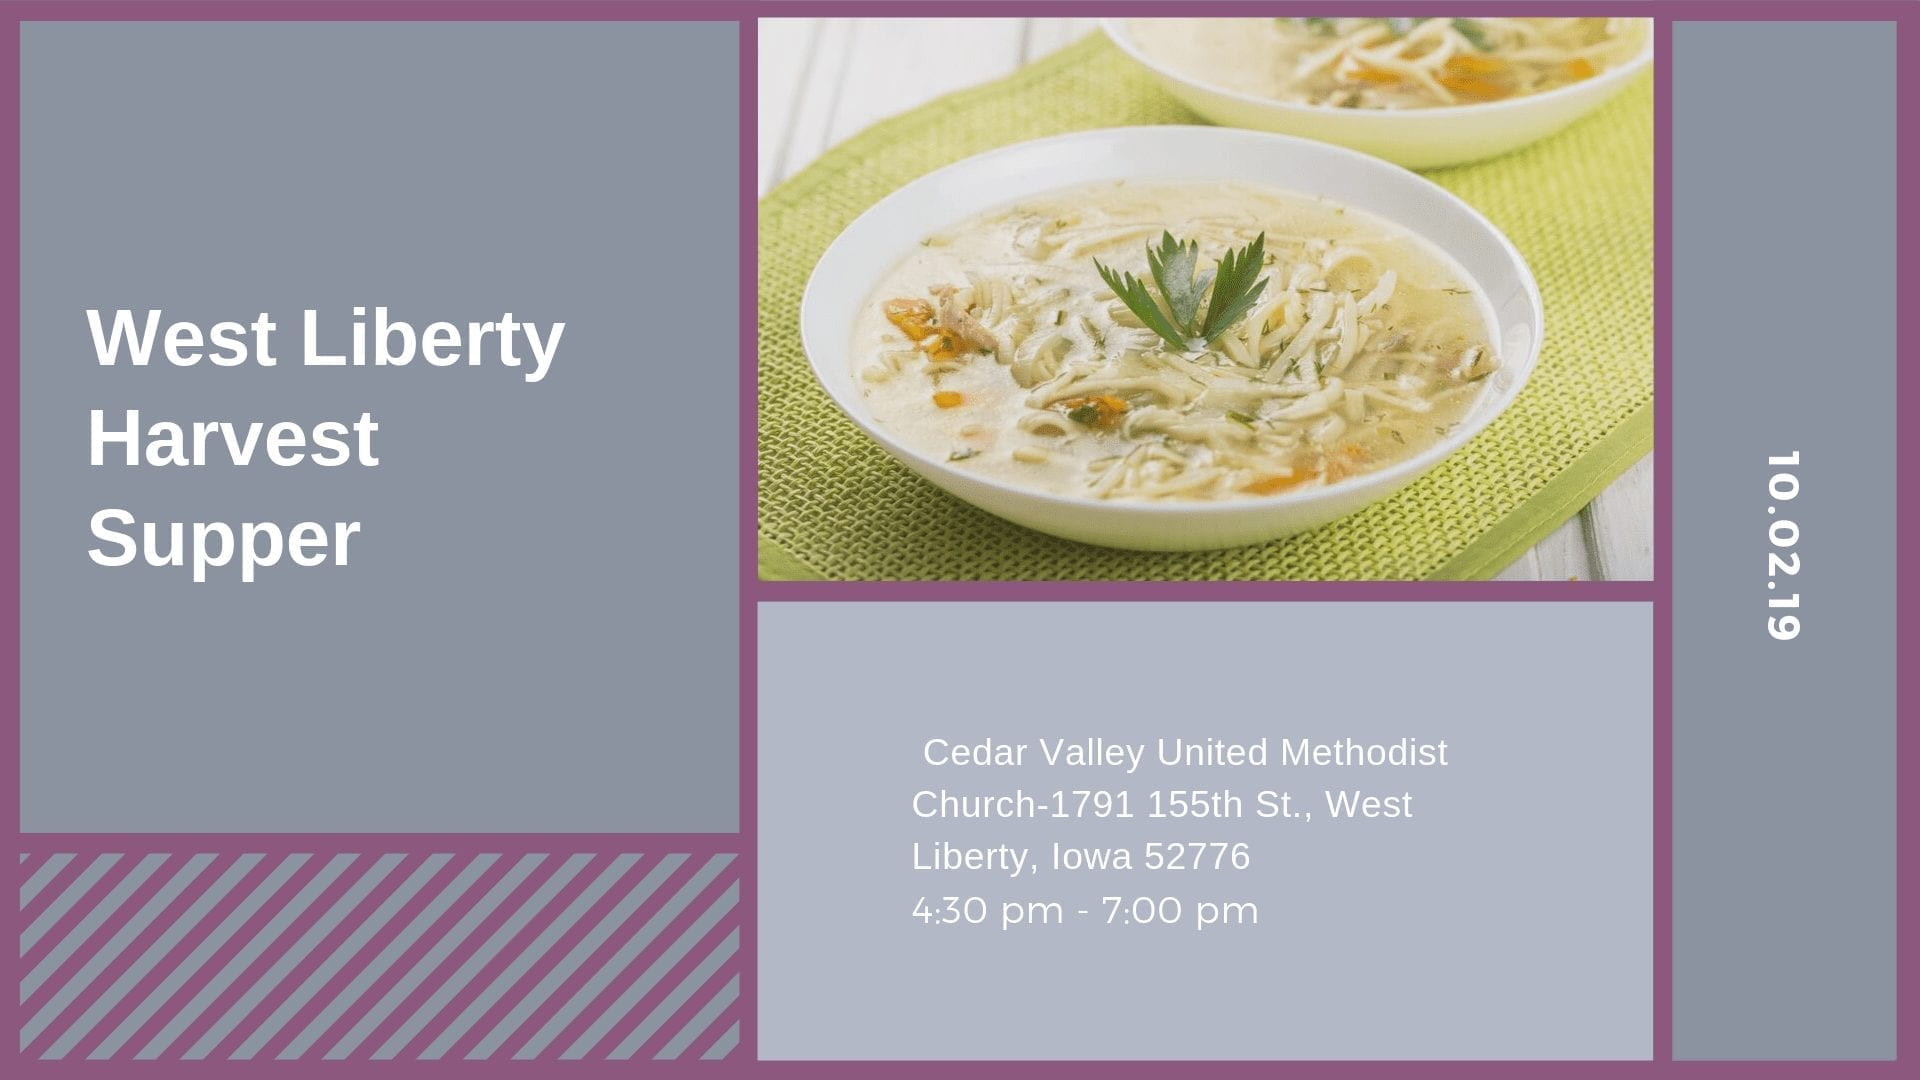 West Liberty Harvest Supper